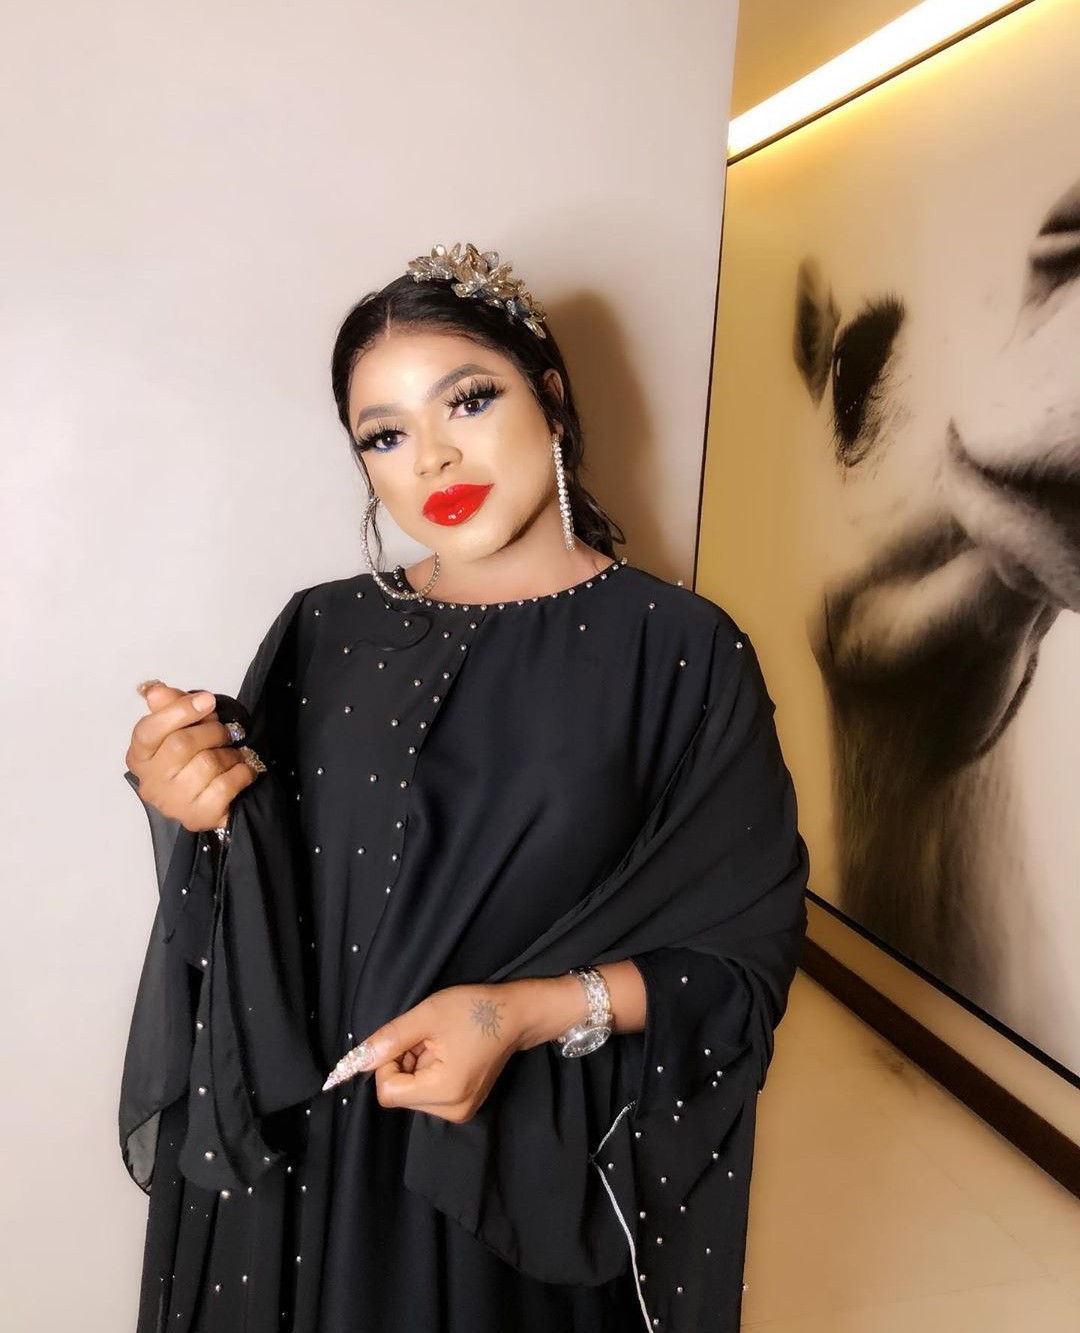 Bobrisky advises that women should dress properly